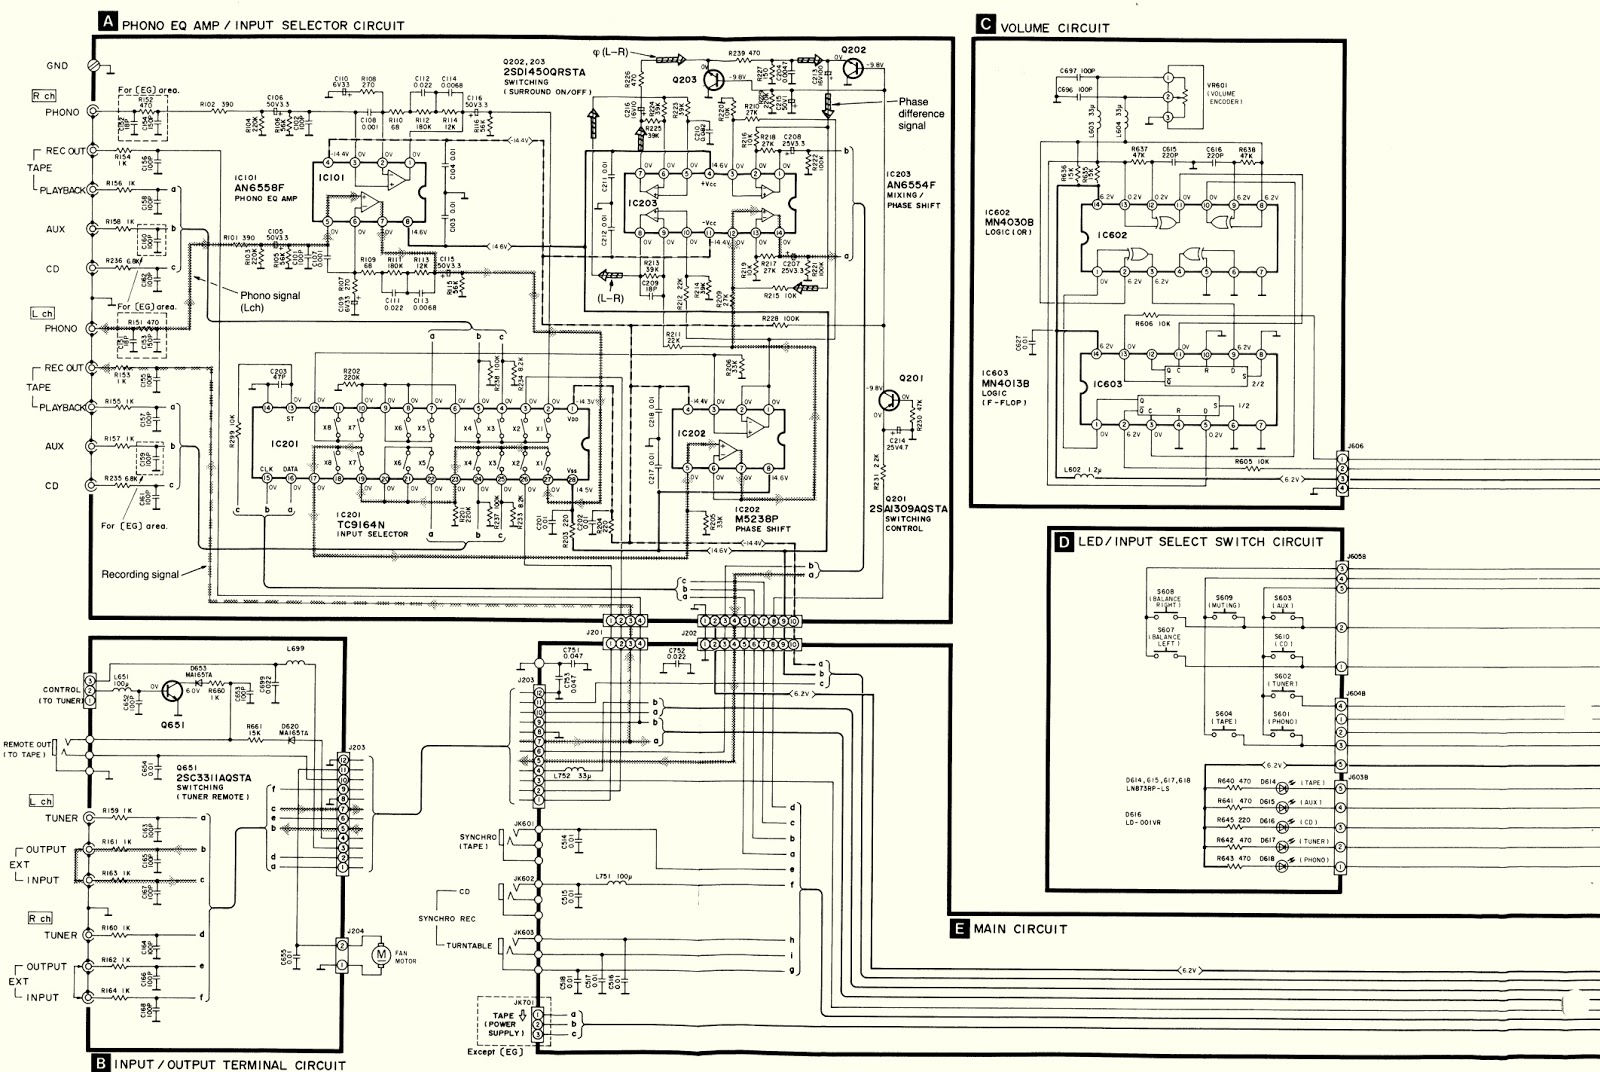 Technics Home Stereo Wiring Diagram Diagrams Images Gallery